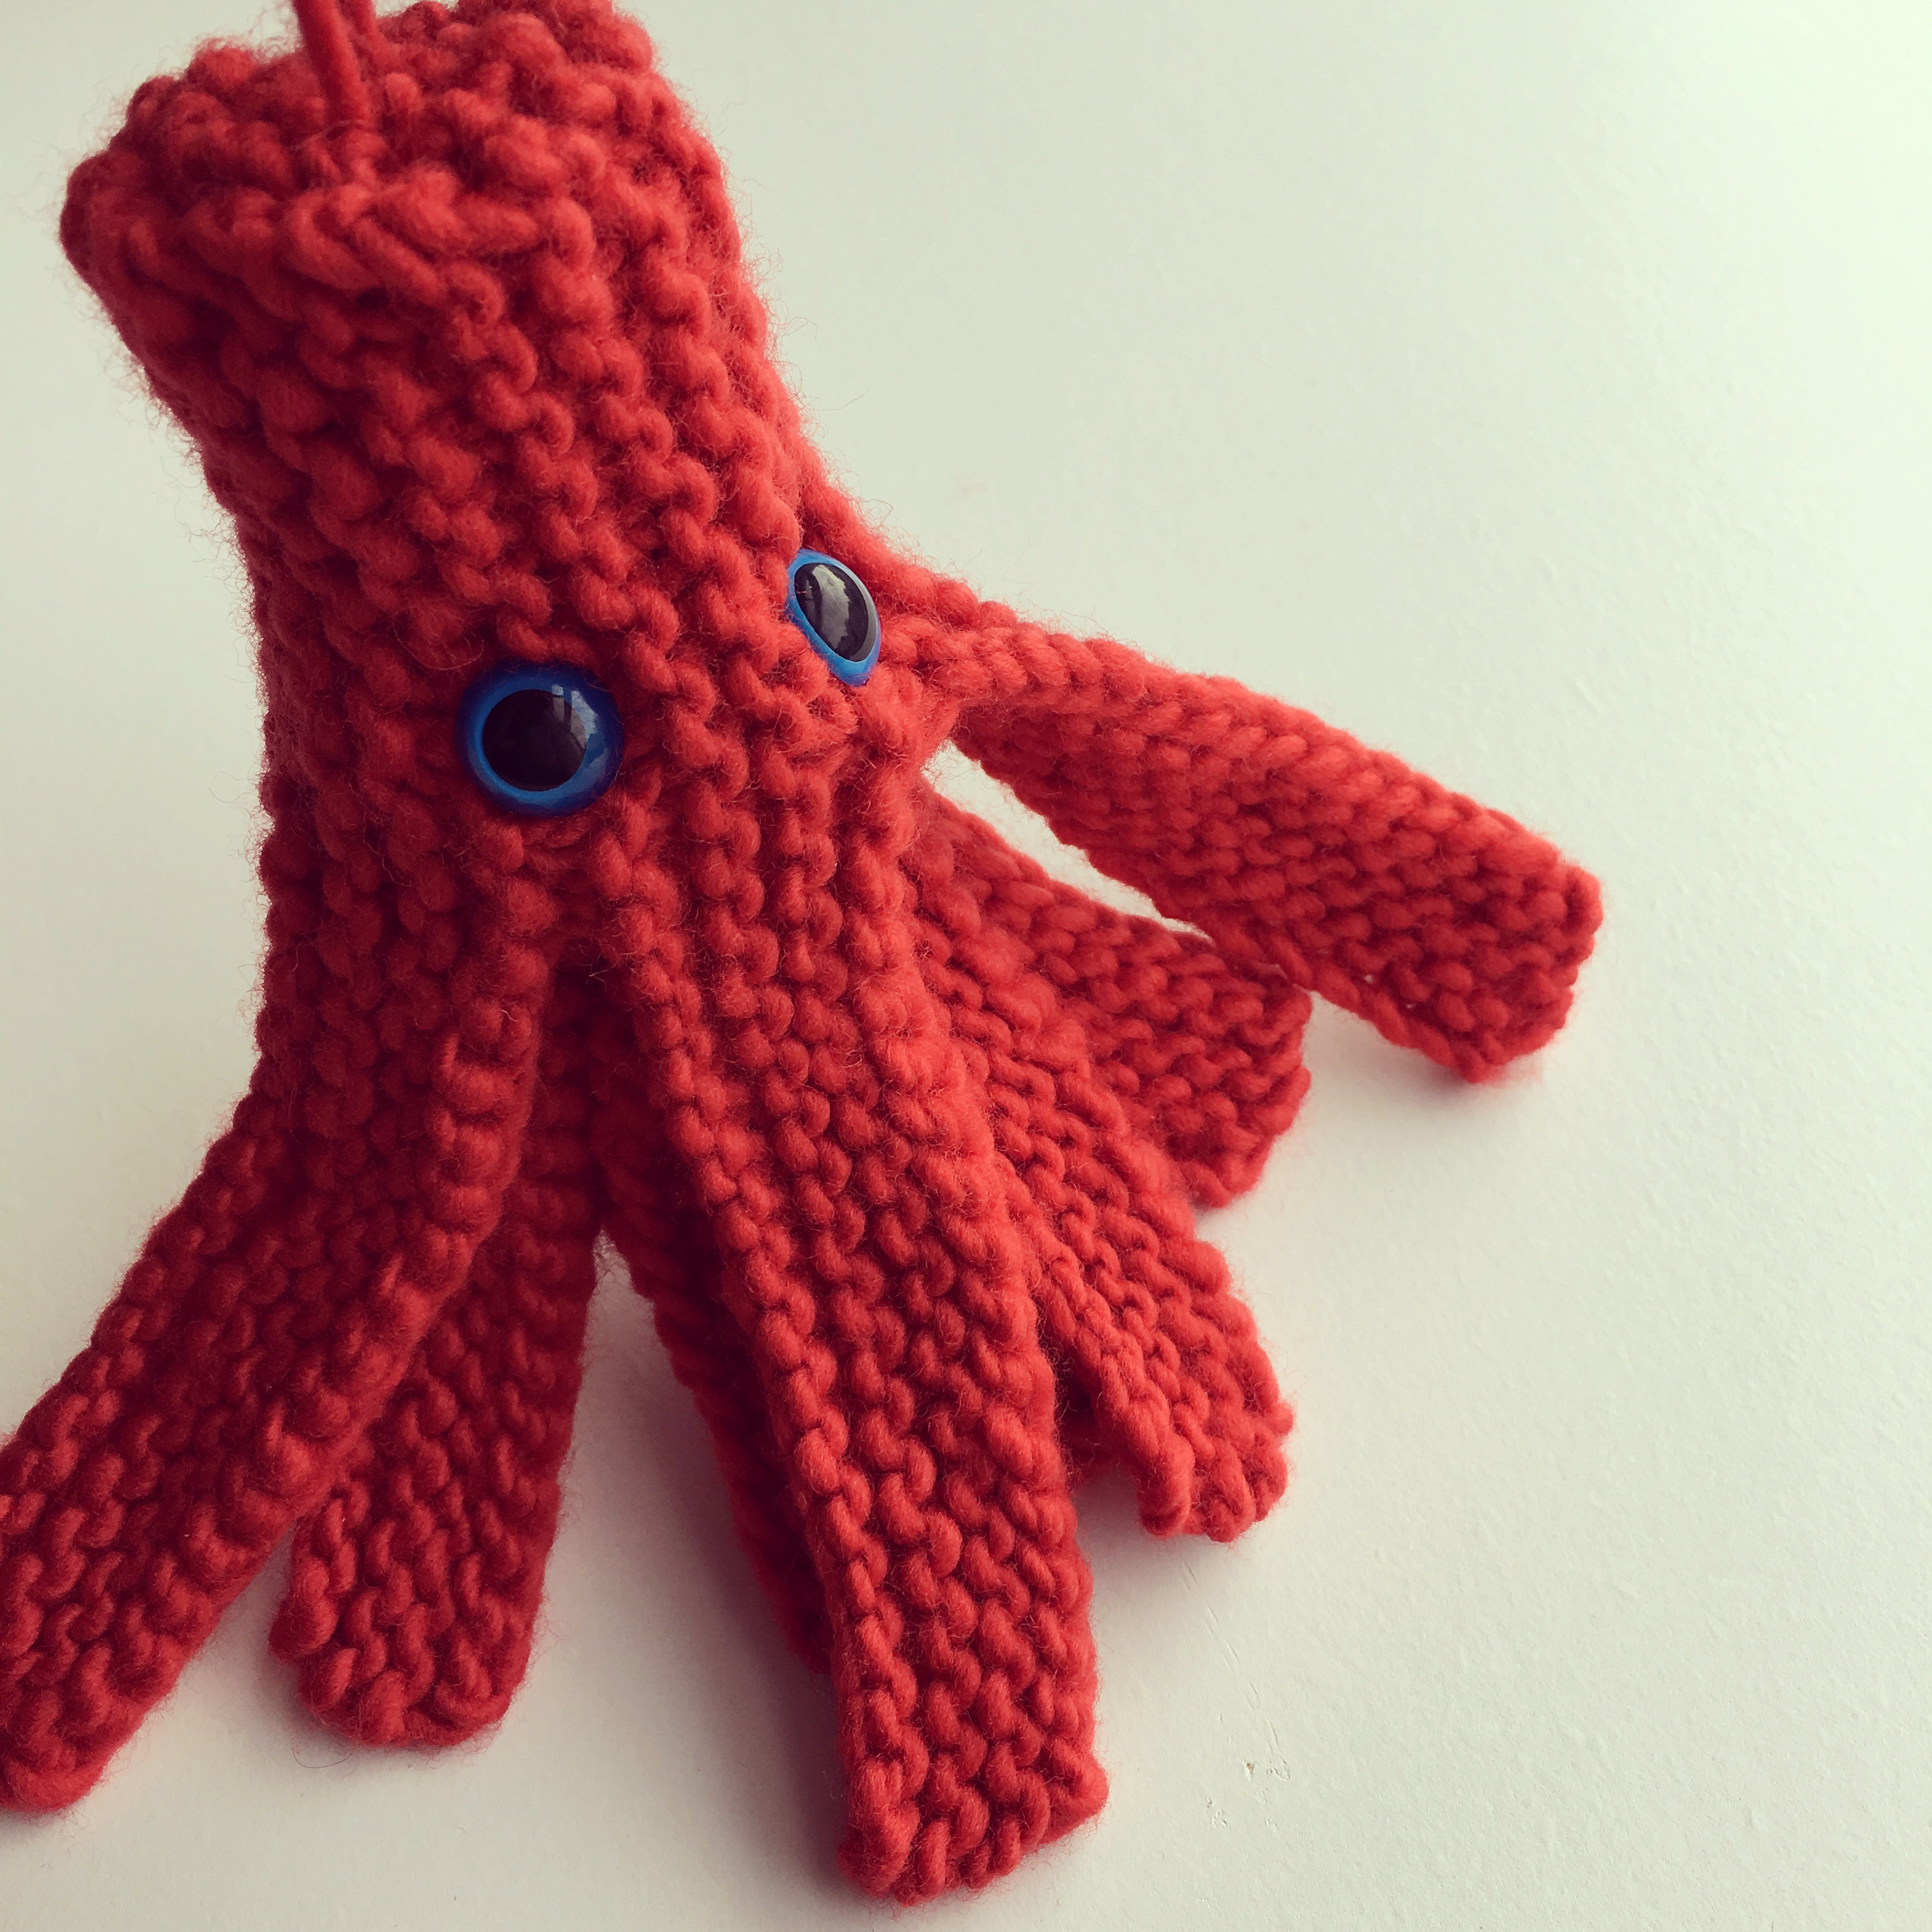 Craftwork, the Octopus – Spatial H